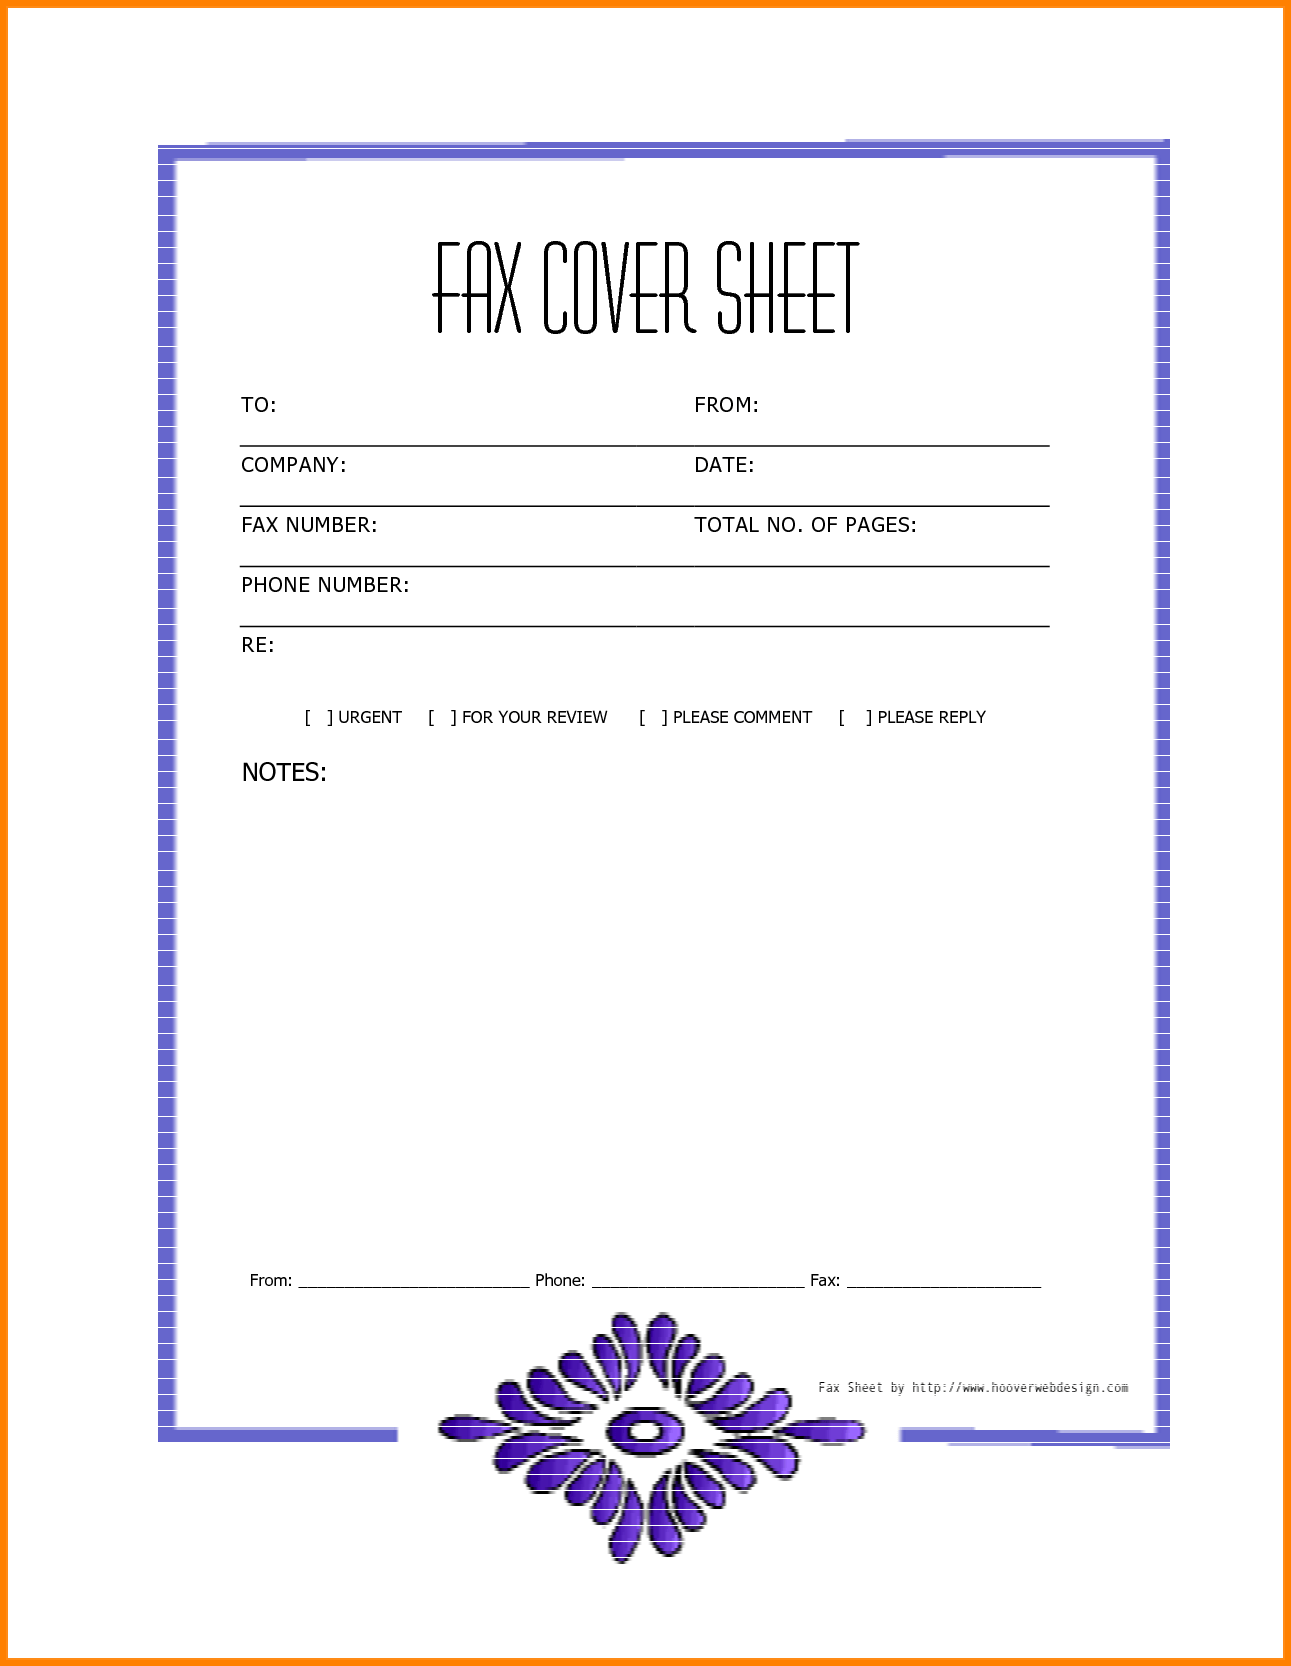 Blank Fax Cover Sheet Free Printable Template